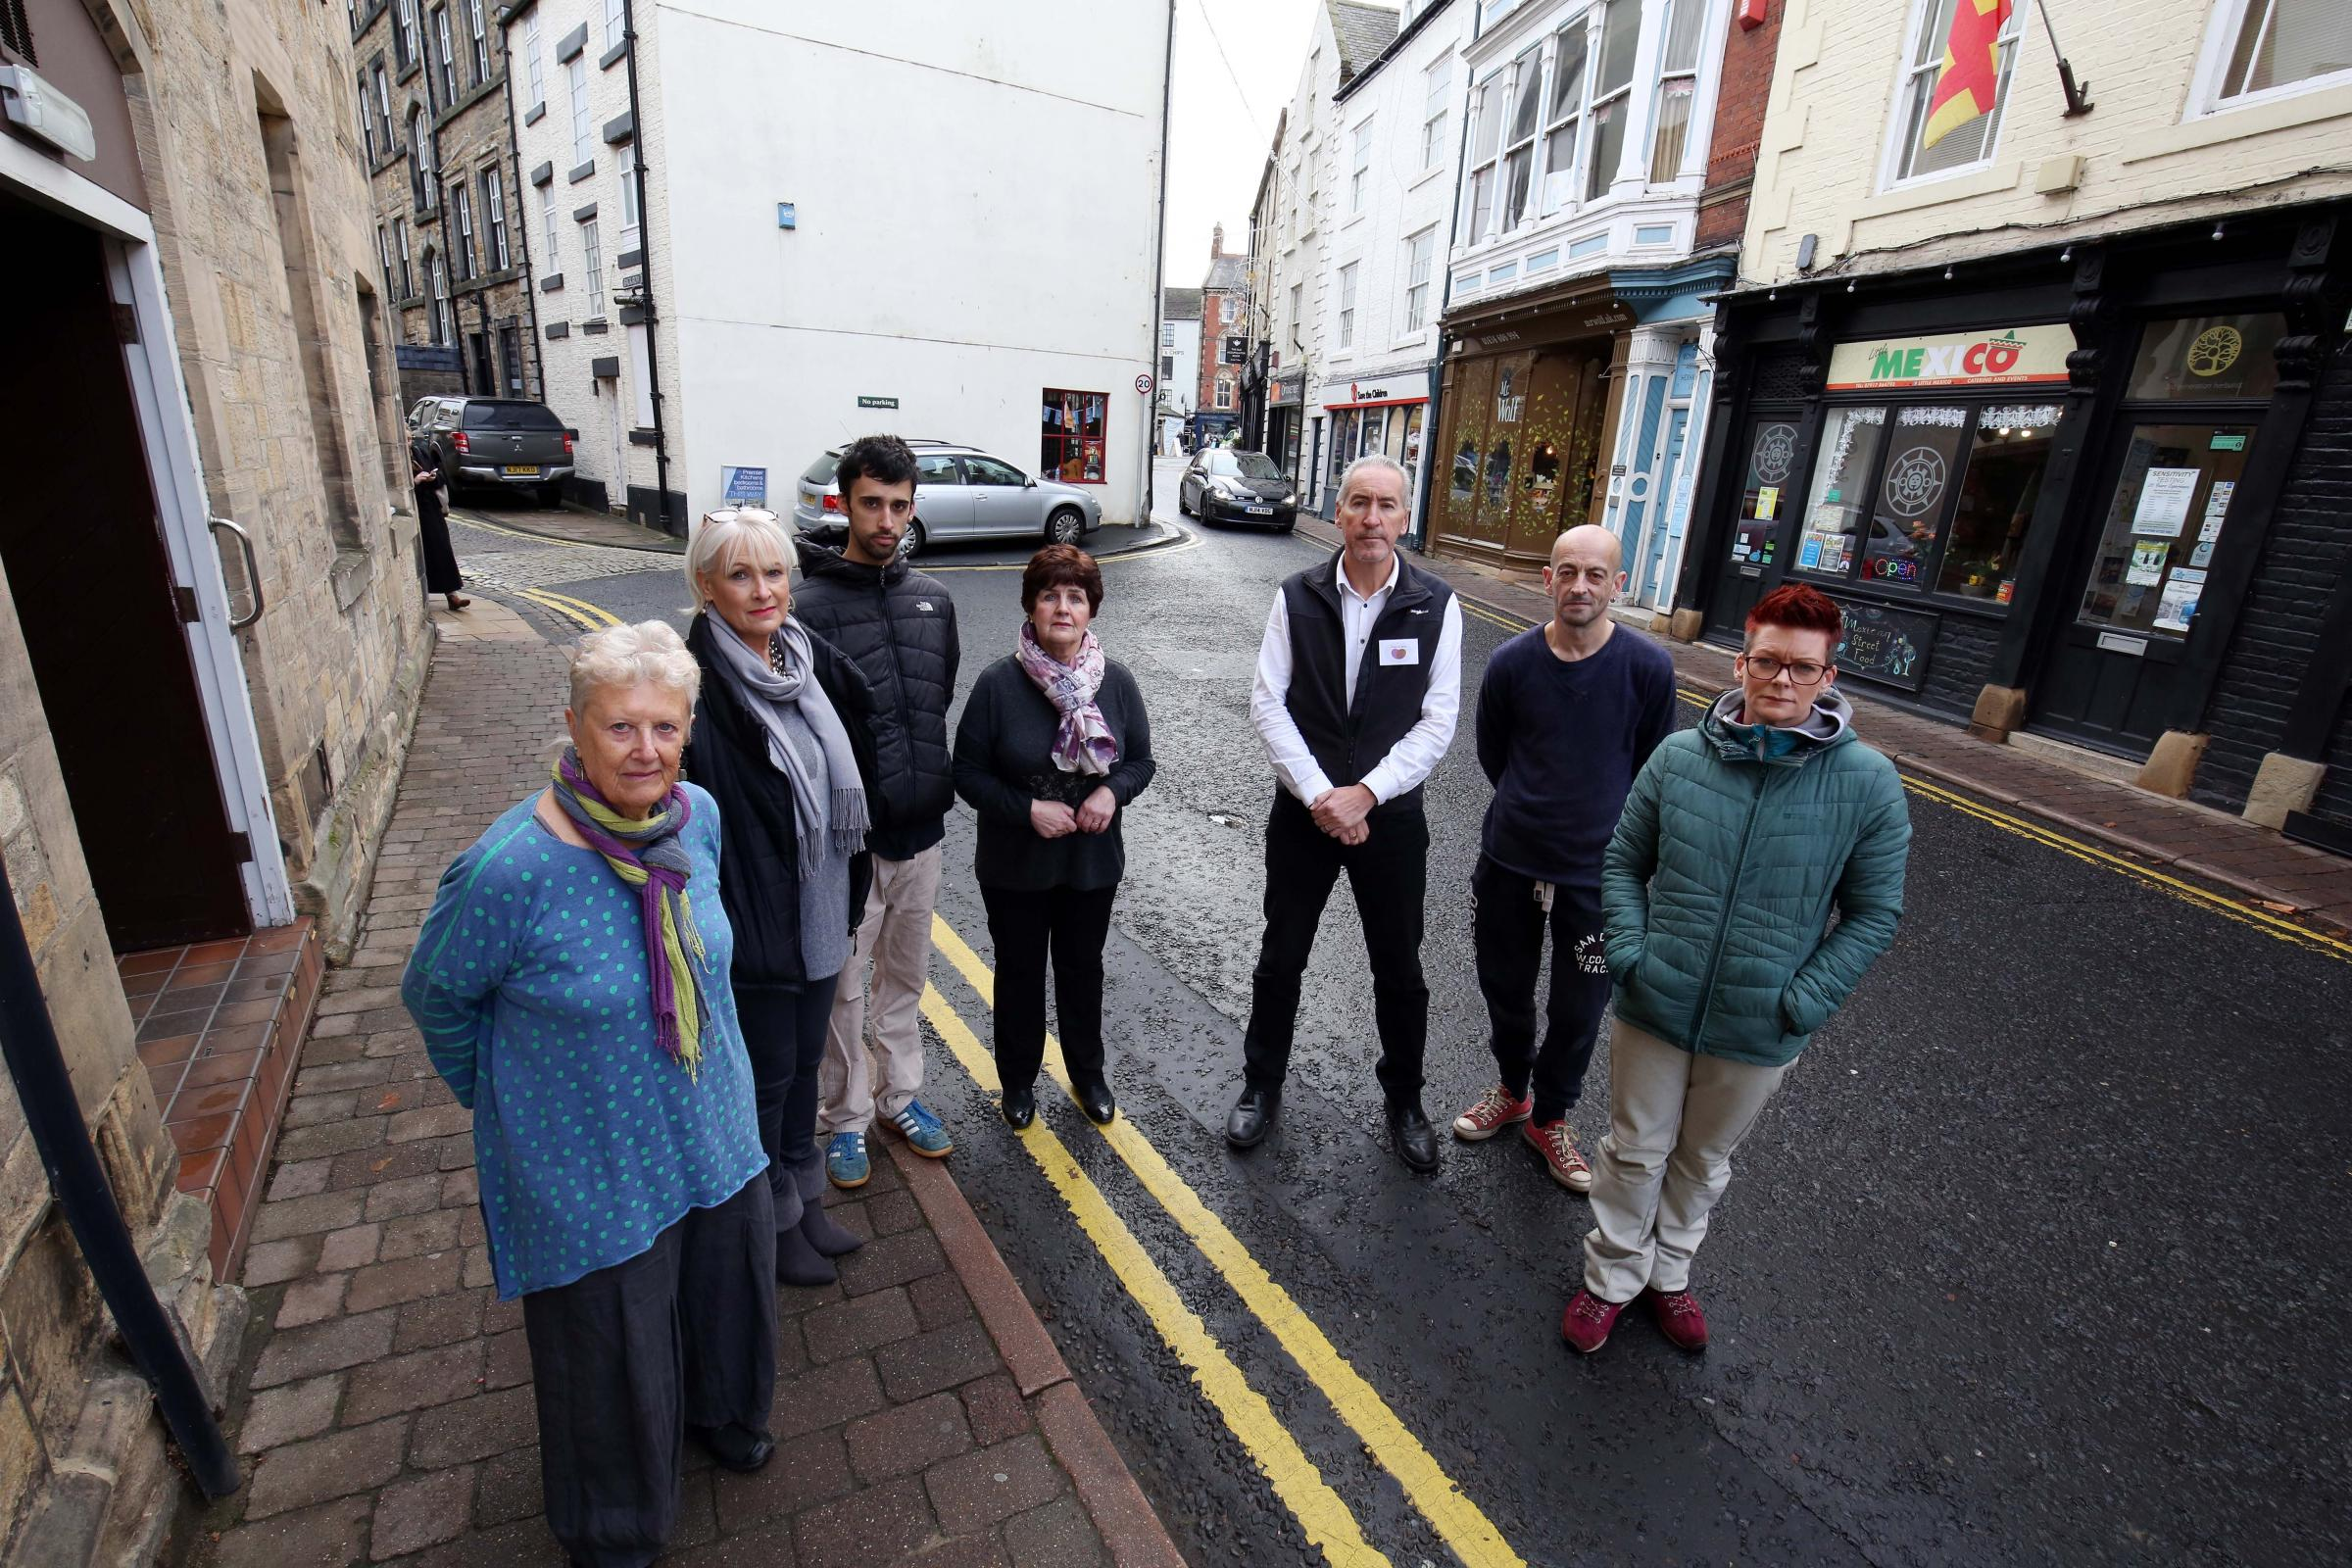 Market Street traders, from the left, Mary Richard, Liz Mortimer, Pablo Navarro,  Gail List, Rich Eagle, Nik Imrye and Jo Foster who are concerned that a lorry ban on a nearby road would cause chaos on their street.